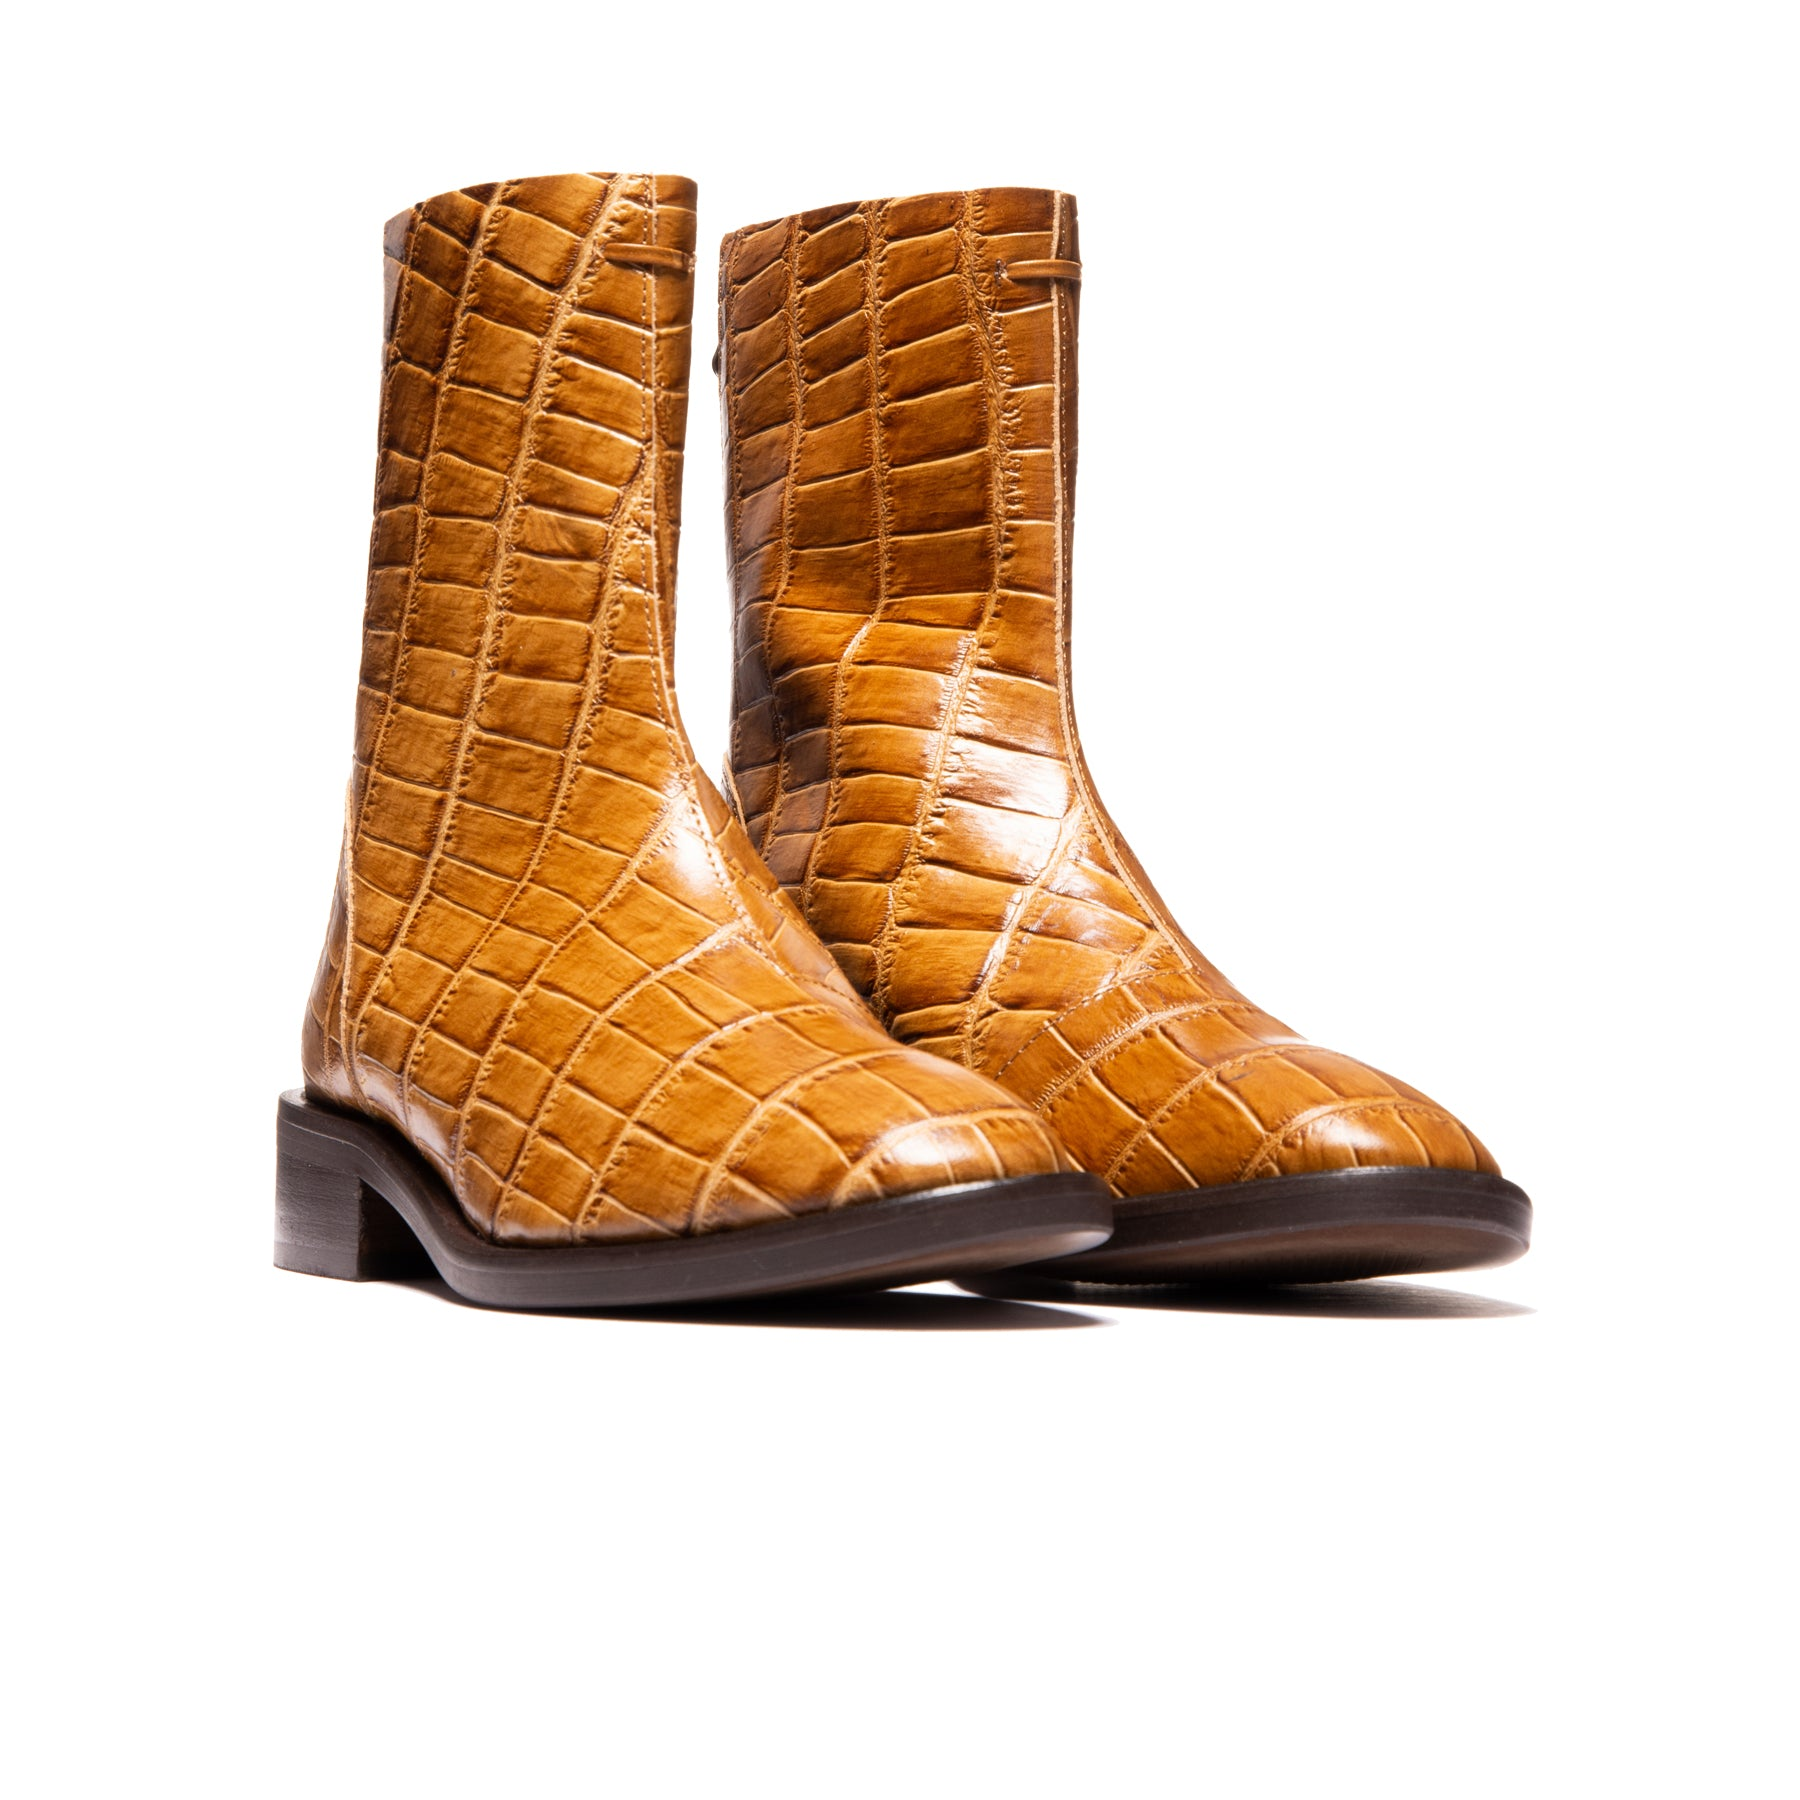 Dalton Tan Big Croco Leather